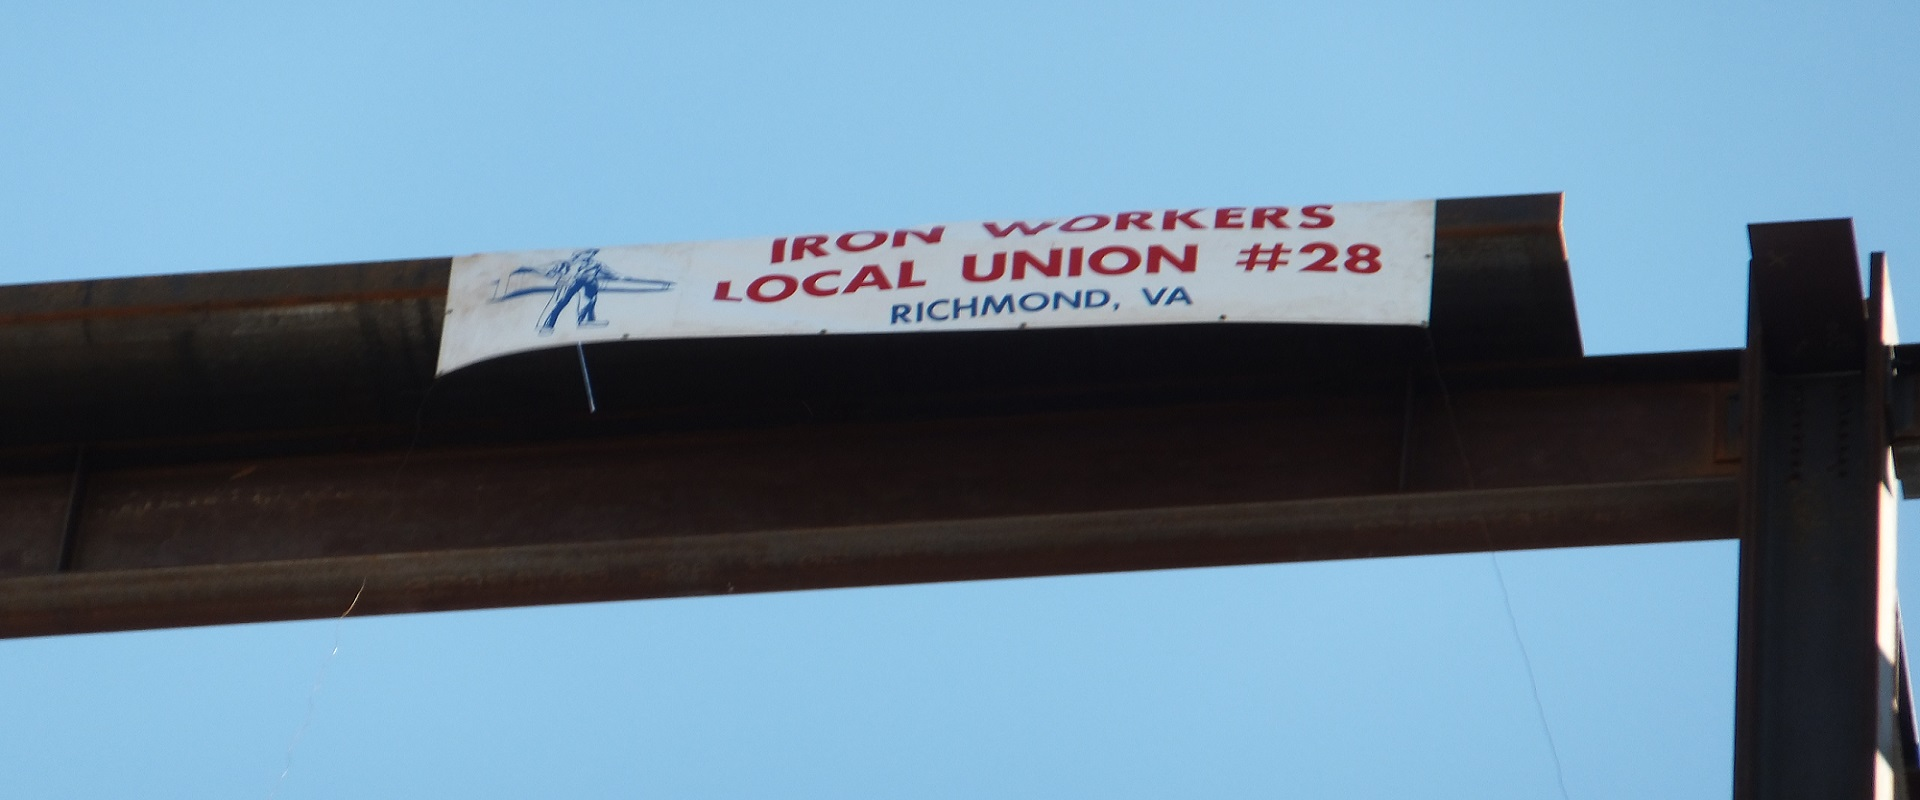 Iron Workers Local 28 | Home